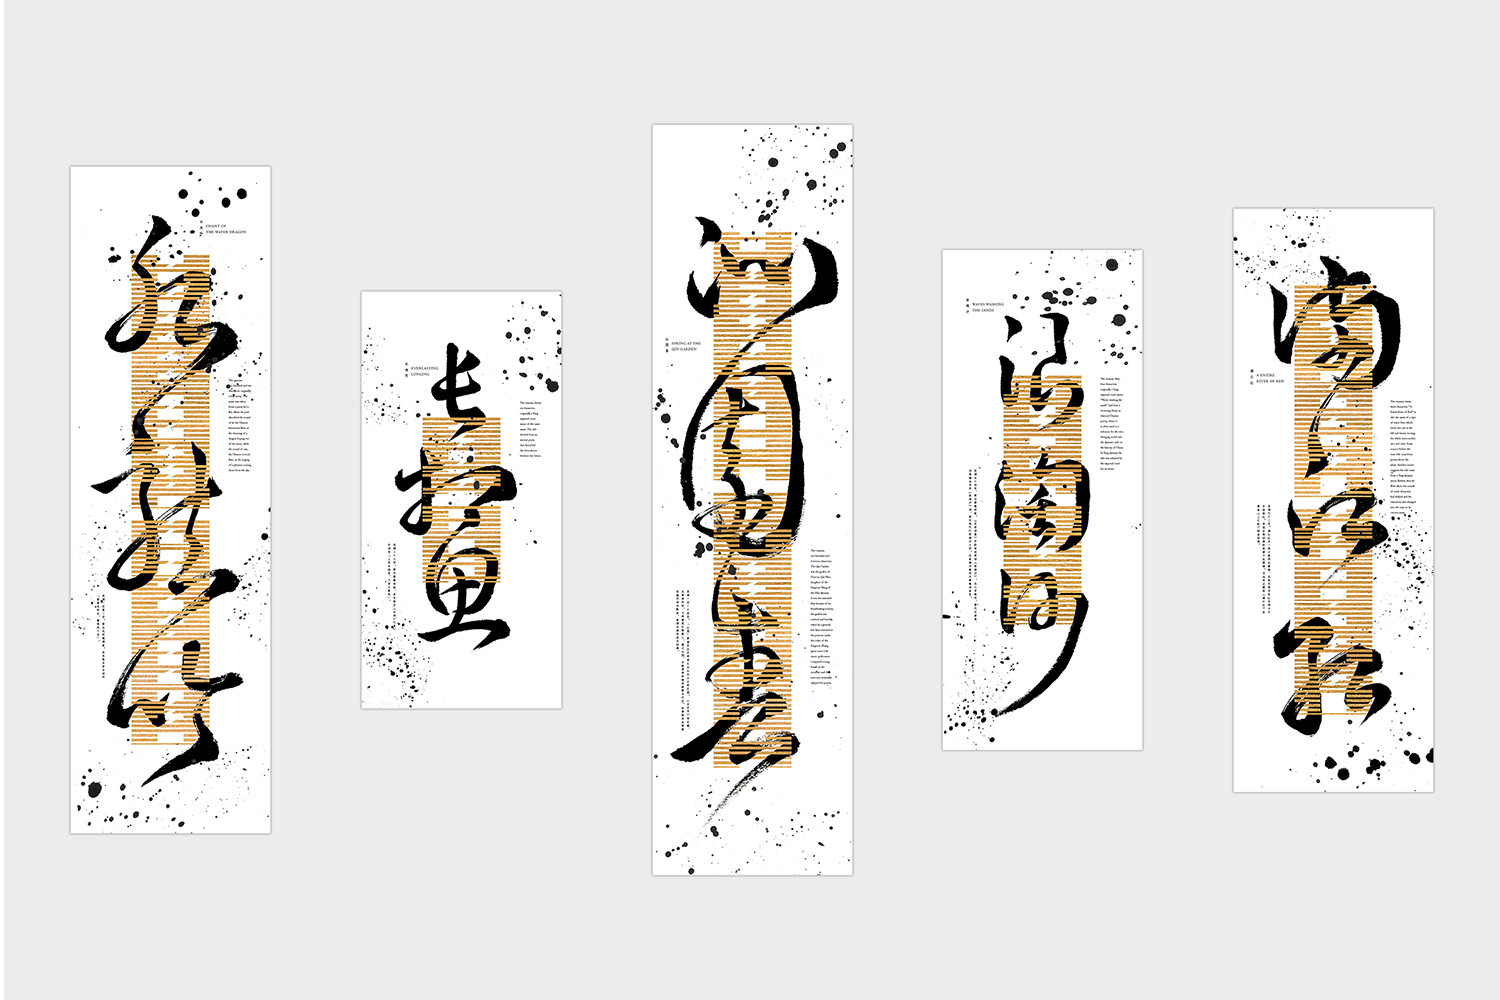 From left to right: 水龙吟 (Tune of the Water Dragon), 长相思 (Everlasting Longing), 沁园春 (Spring at the Qin Garden), 浪淘沙 (Tune of the Diviner), 满江红 (Wind Entering the Pine Woods)